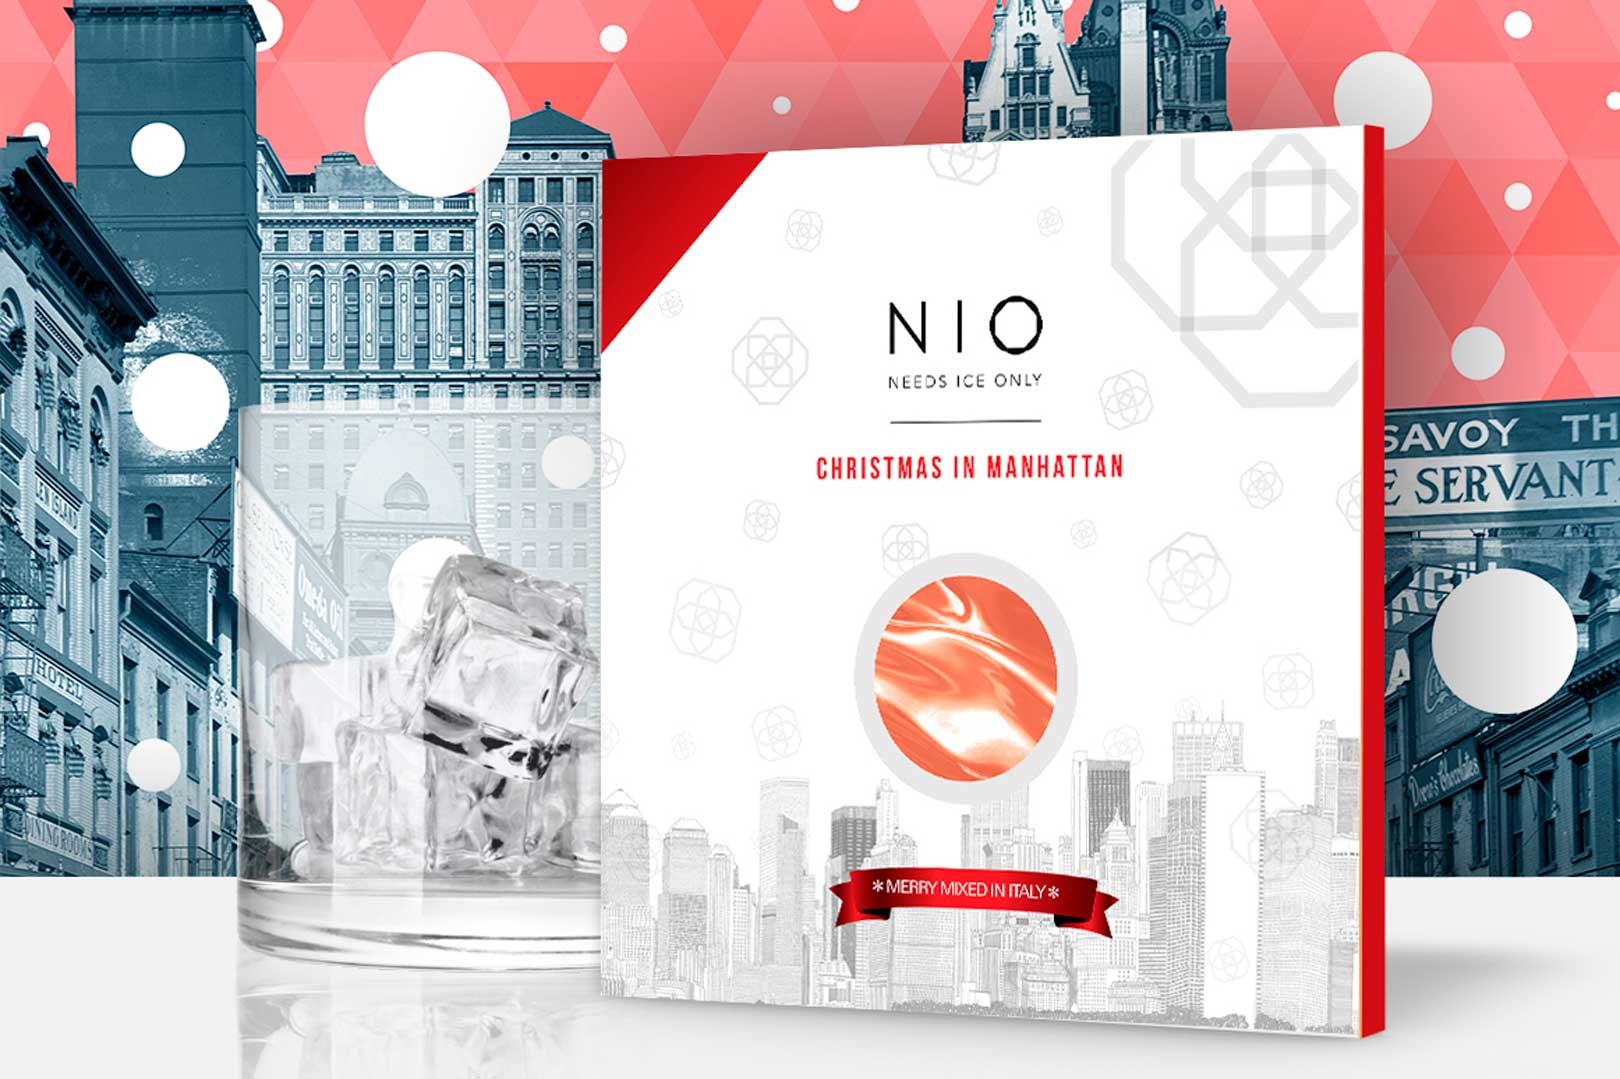 NIO  Needs Ice Only  Flawless Milano  The Lifestyle Guide